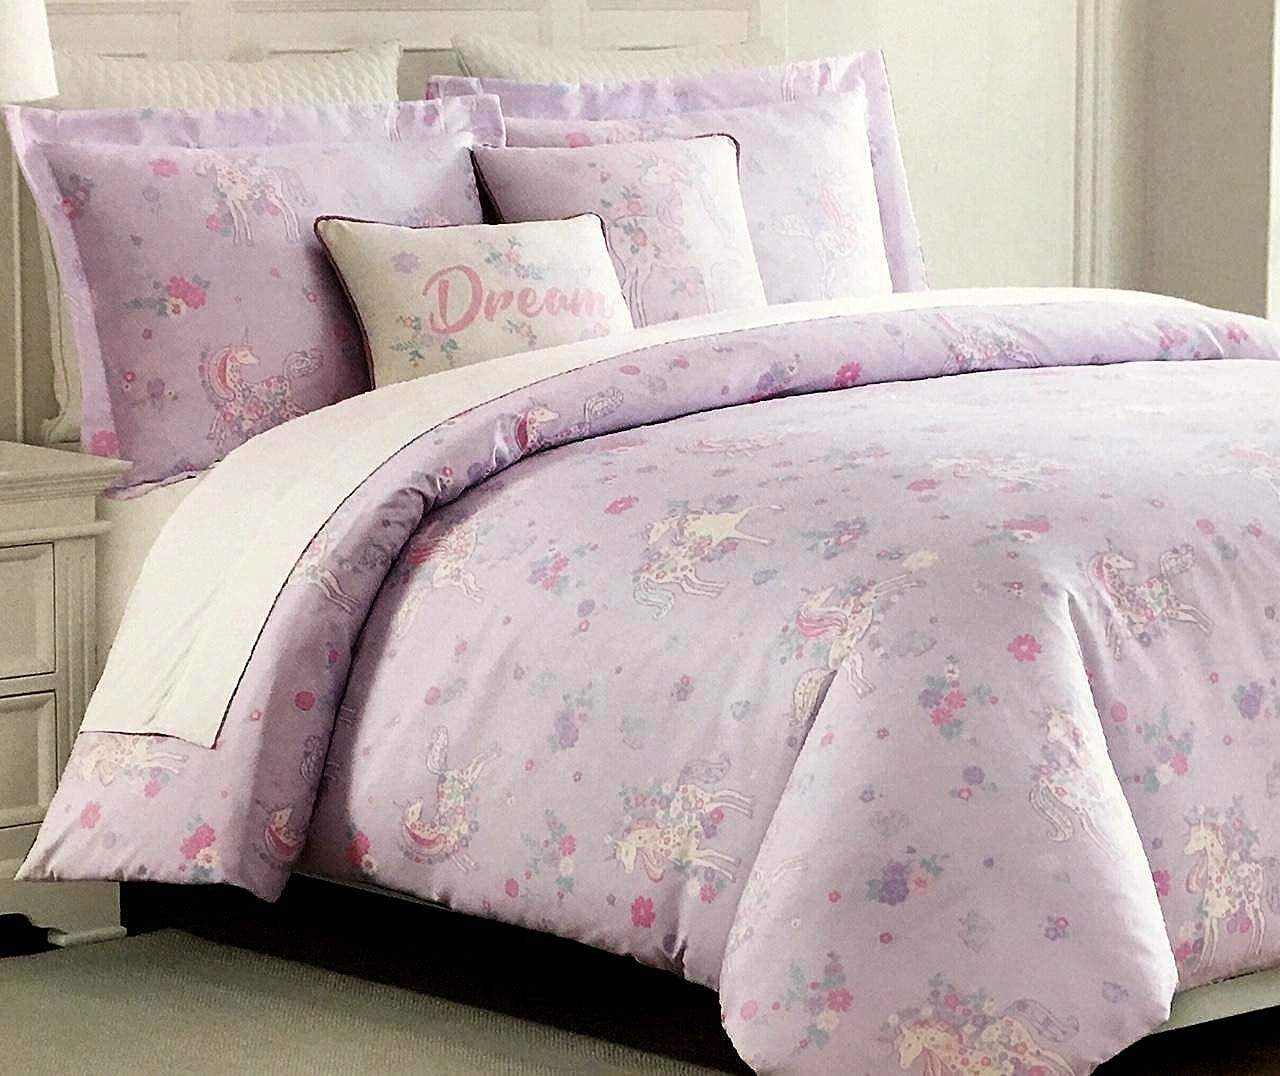 Unicorns and Spring Flowers All-Season Girls Twin Comforter Set by Nicole Miller